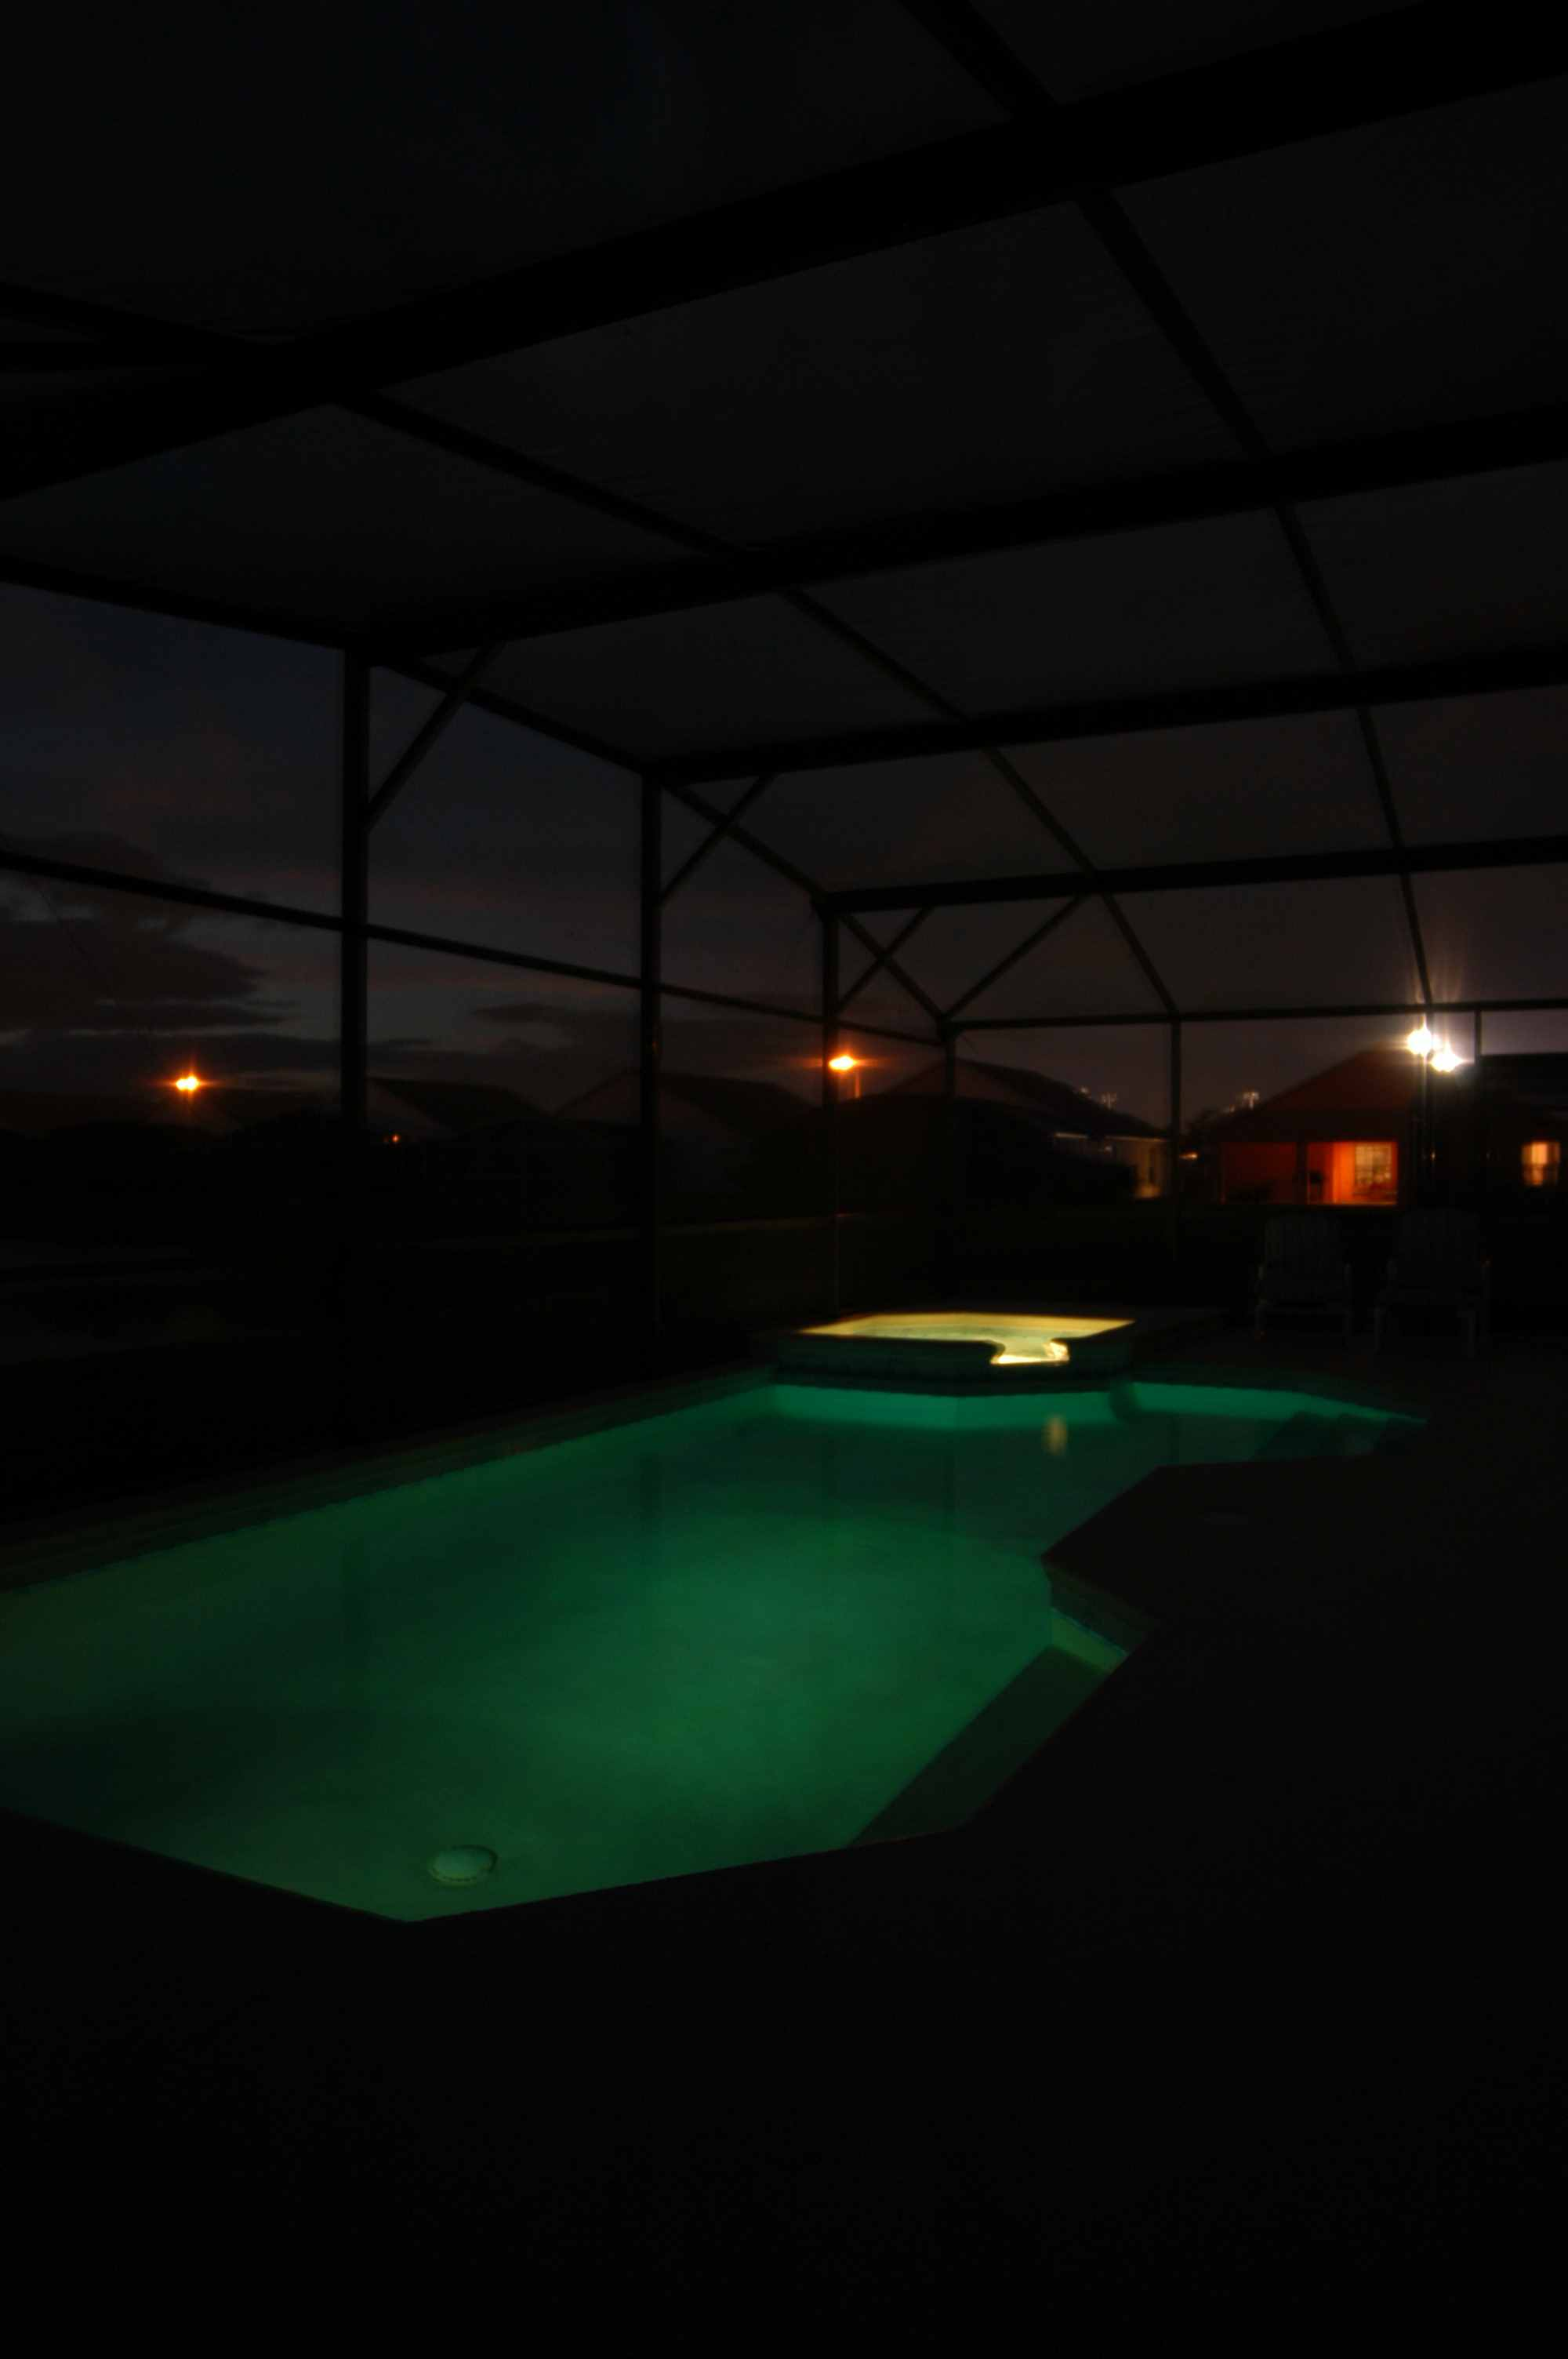 Swimming pool underwater lights on deluxe interior lighting design - Swimming pool lighting design ...